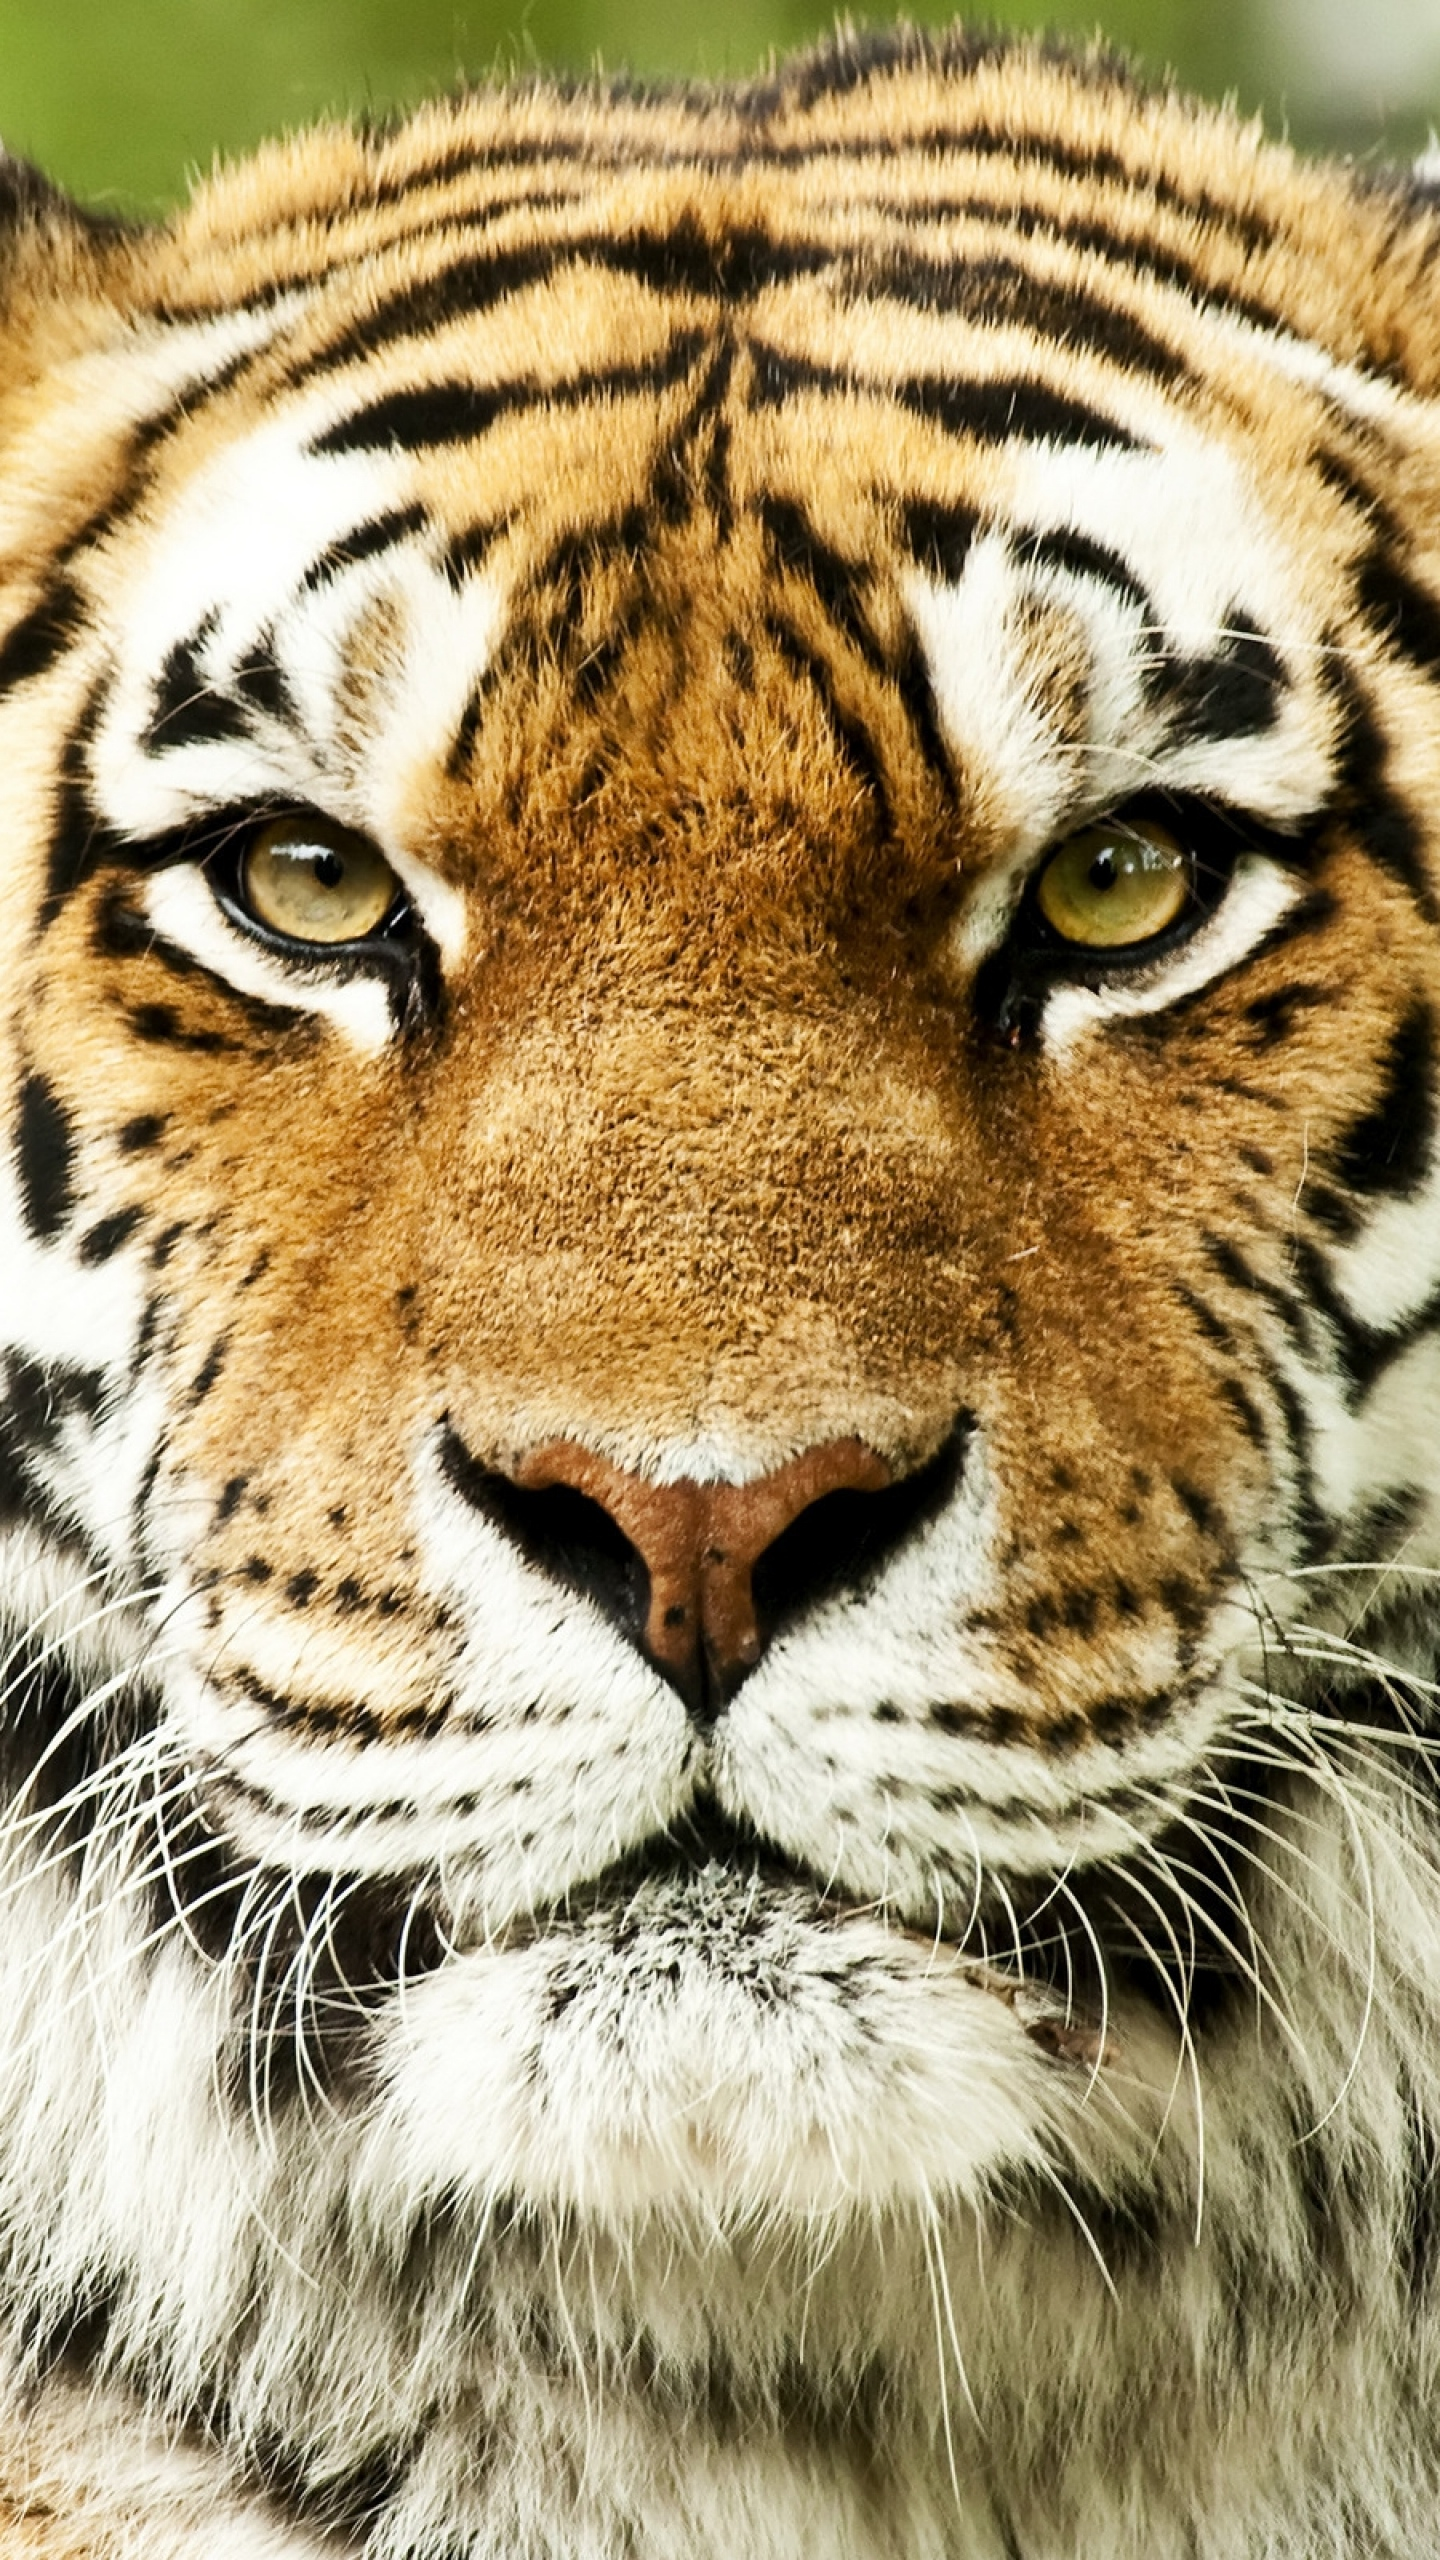 QHD Samsung Galaxy S6, S7, Edge, Note, LG G4 Tiger Wallpapers HD